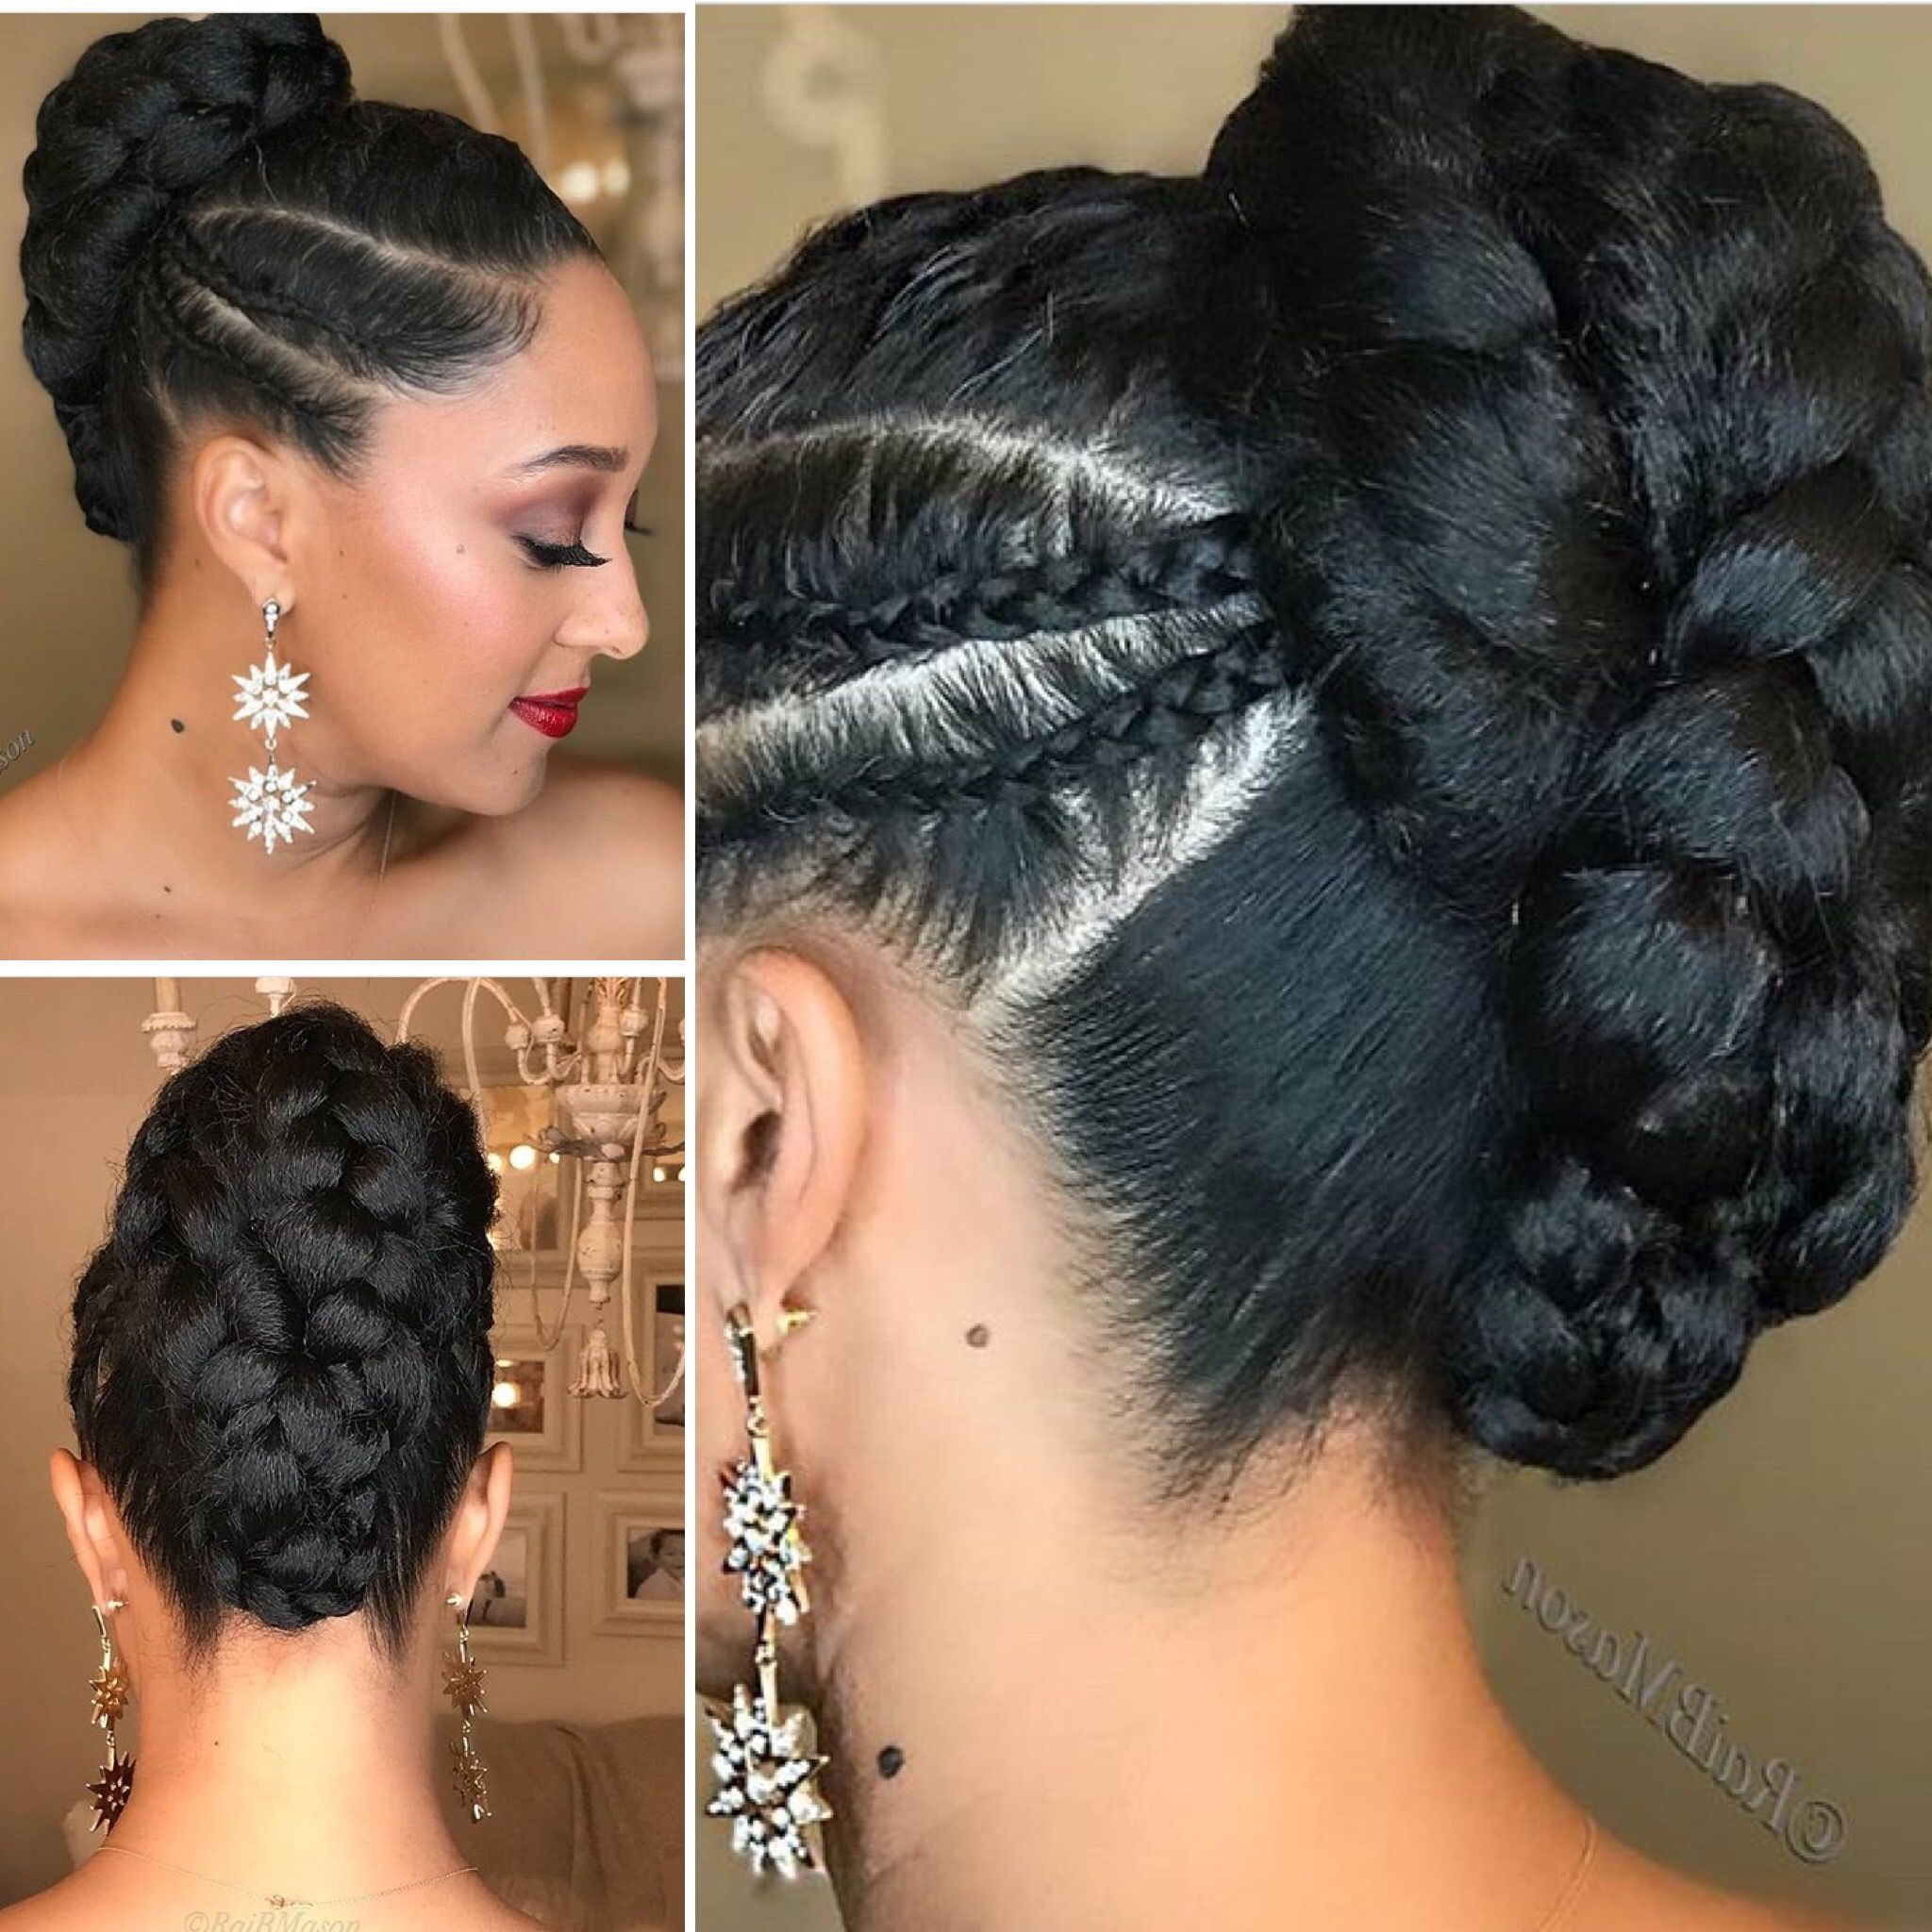 my vow renewal hair style | hair <3 in 2019 | natural hair